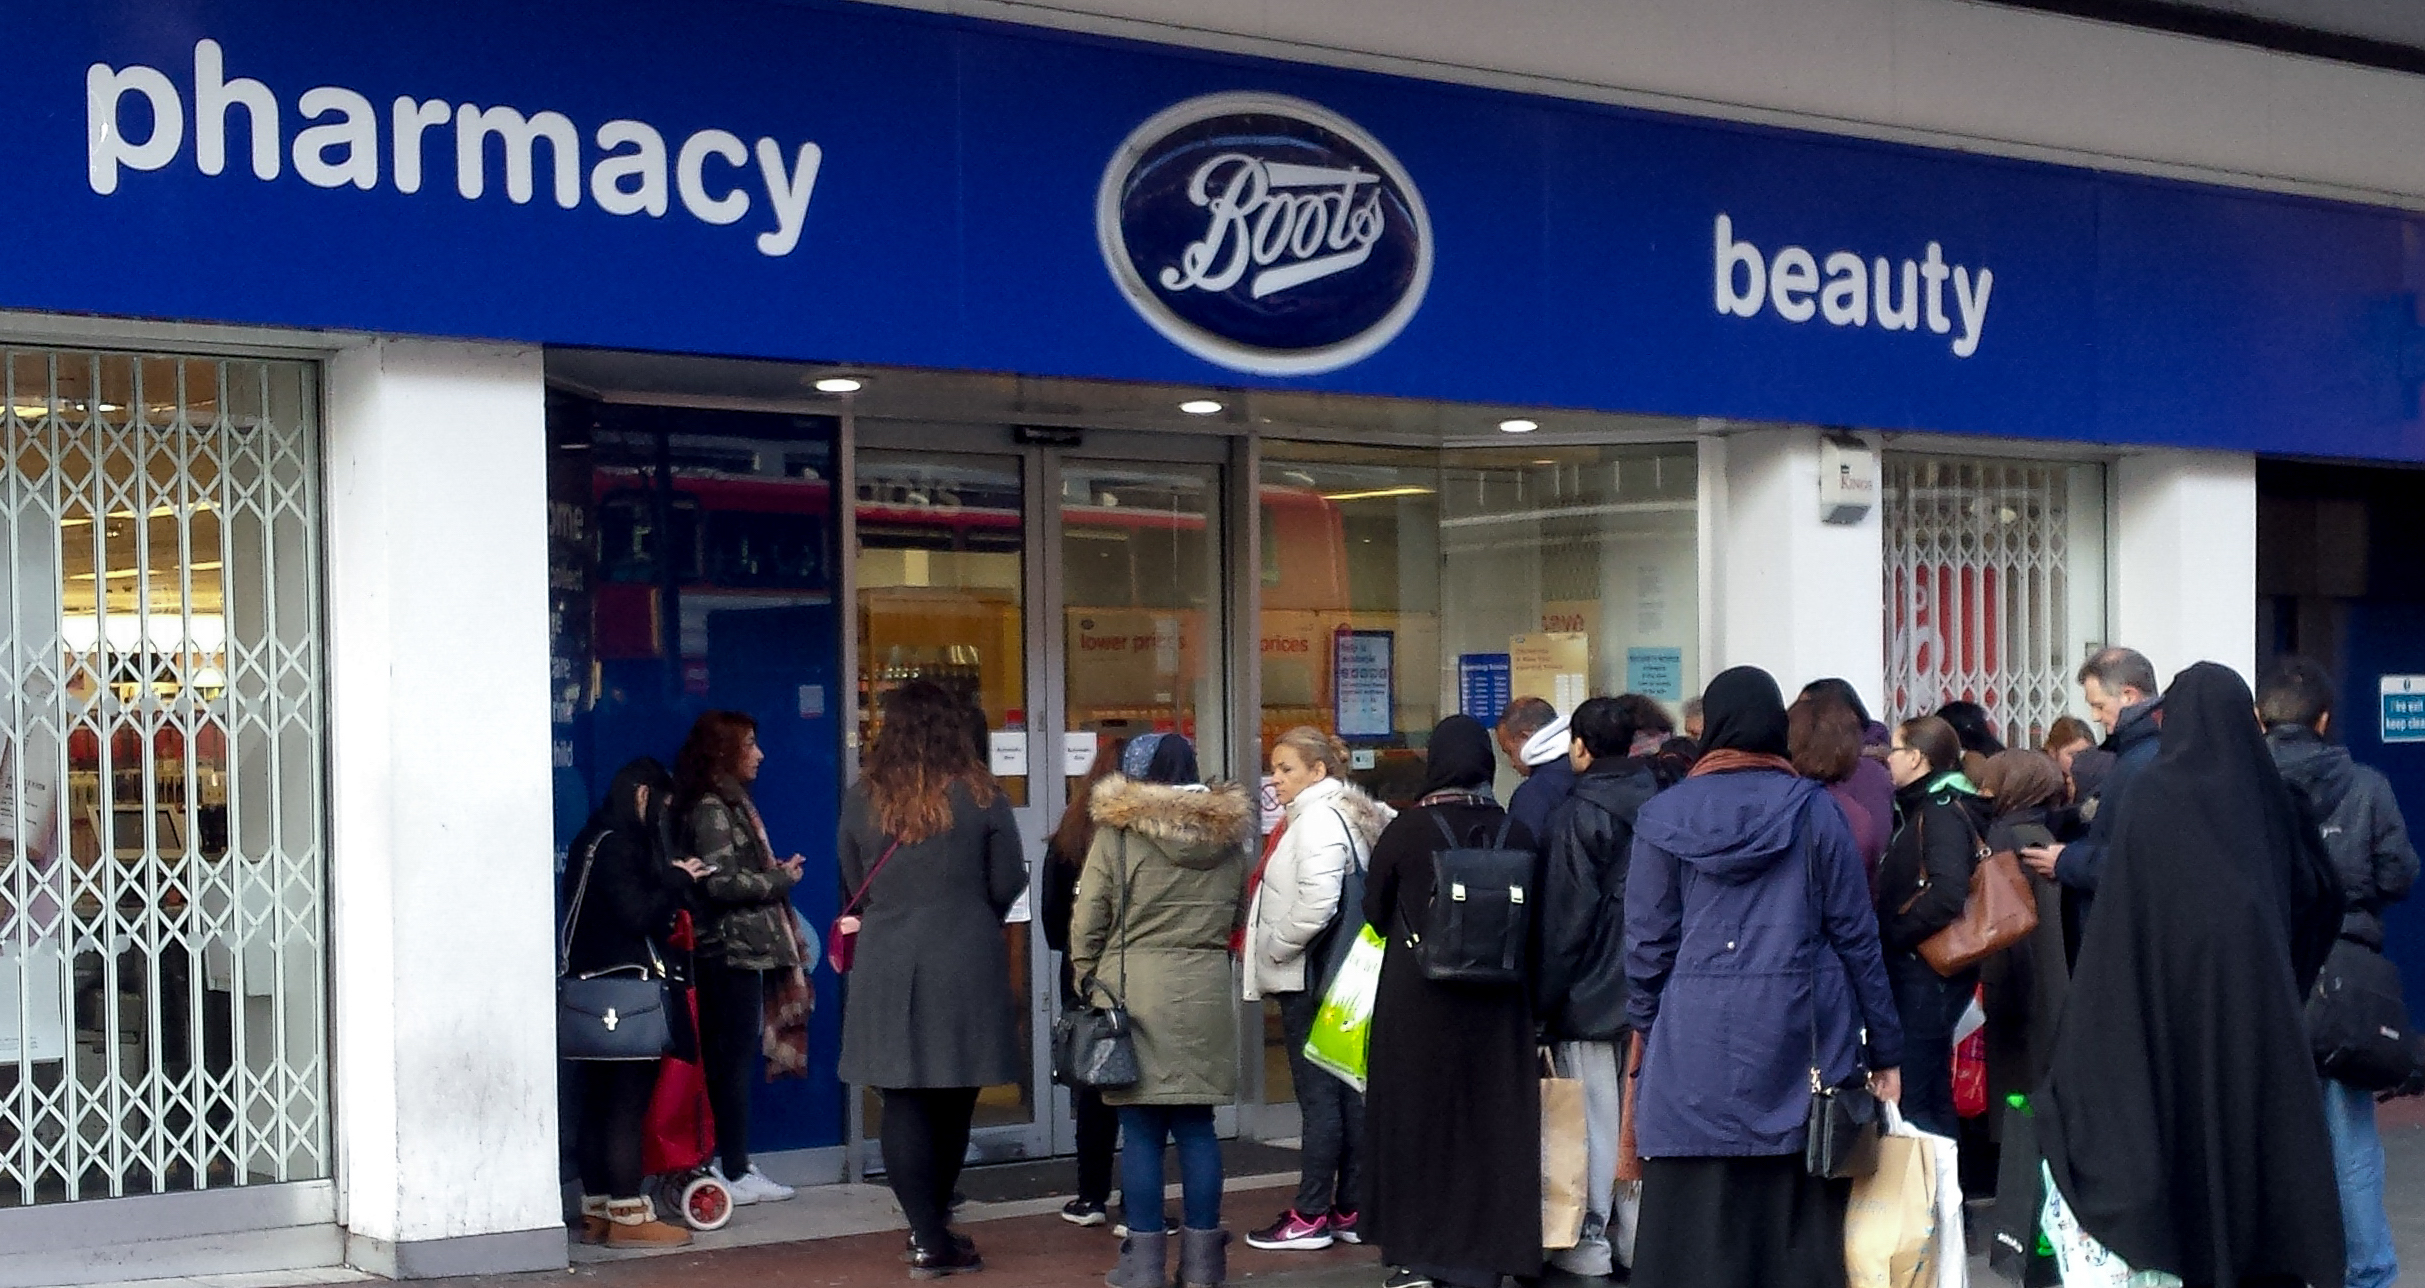 Coronavirus: Shoppers 'angry' as Boots 'opens late' and closes 'for lunch'